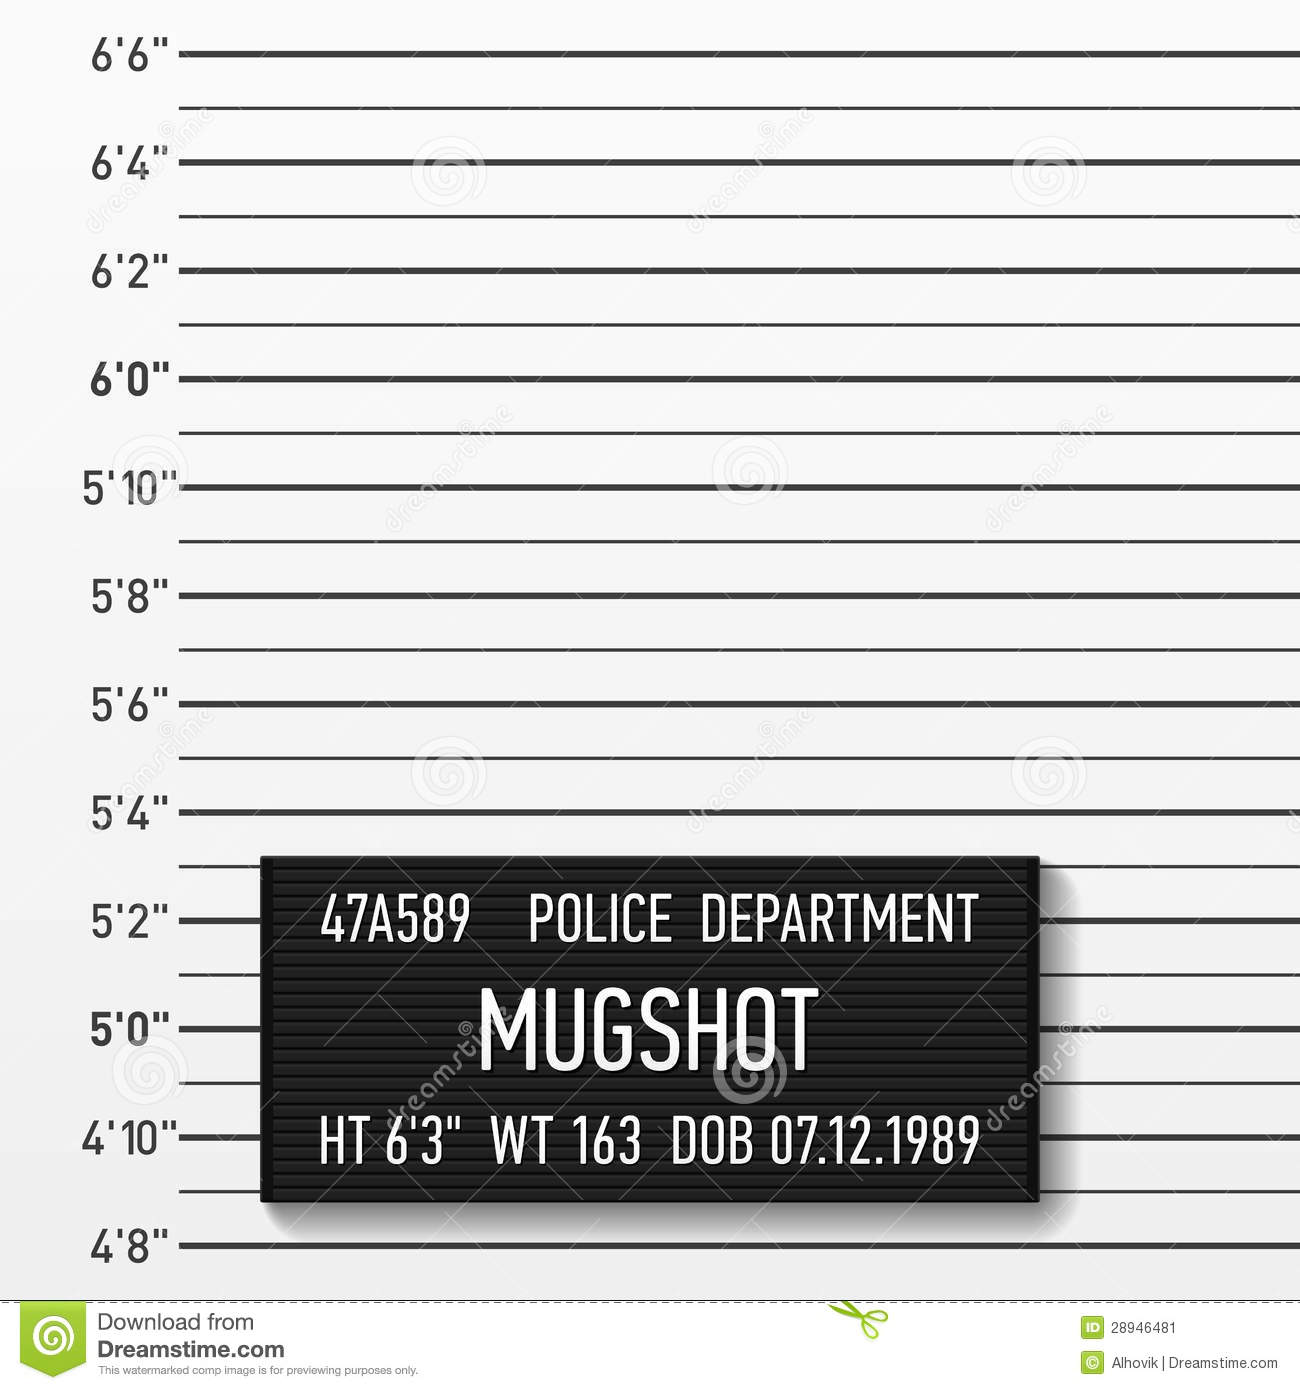 Police mugshot vector illustration. Add a photo.